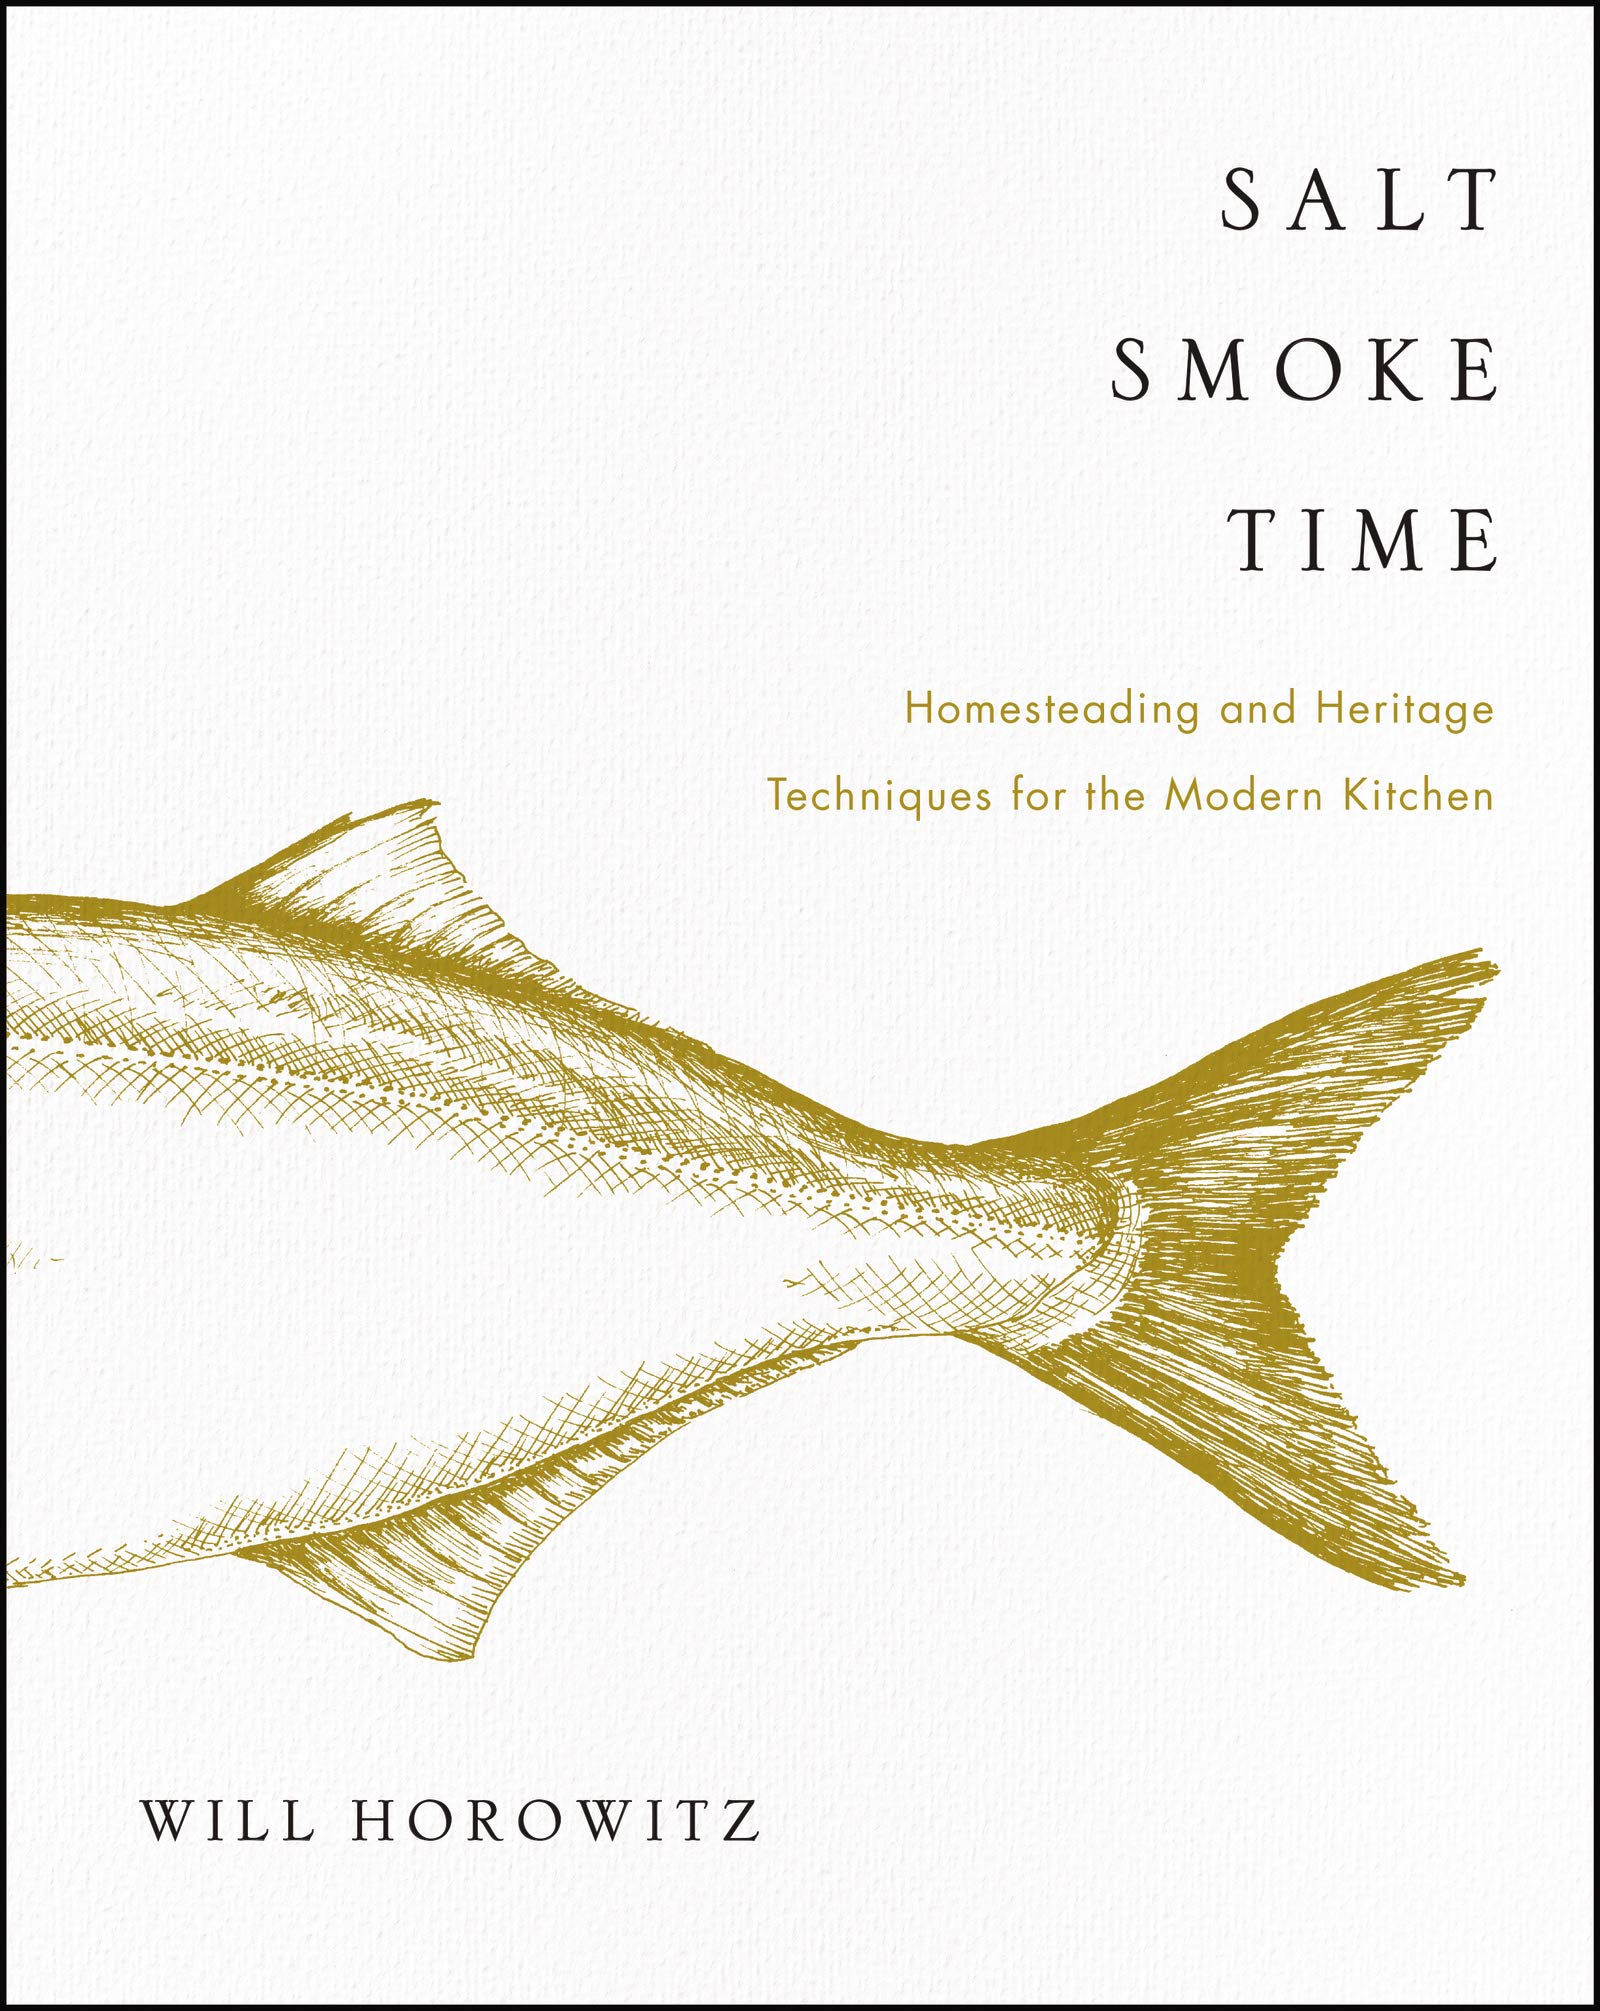 Salt Smoke Time: Homesteading and Heritage Techniques for the Modern Kitchen by William Morrow Cookbooks